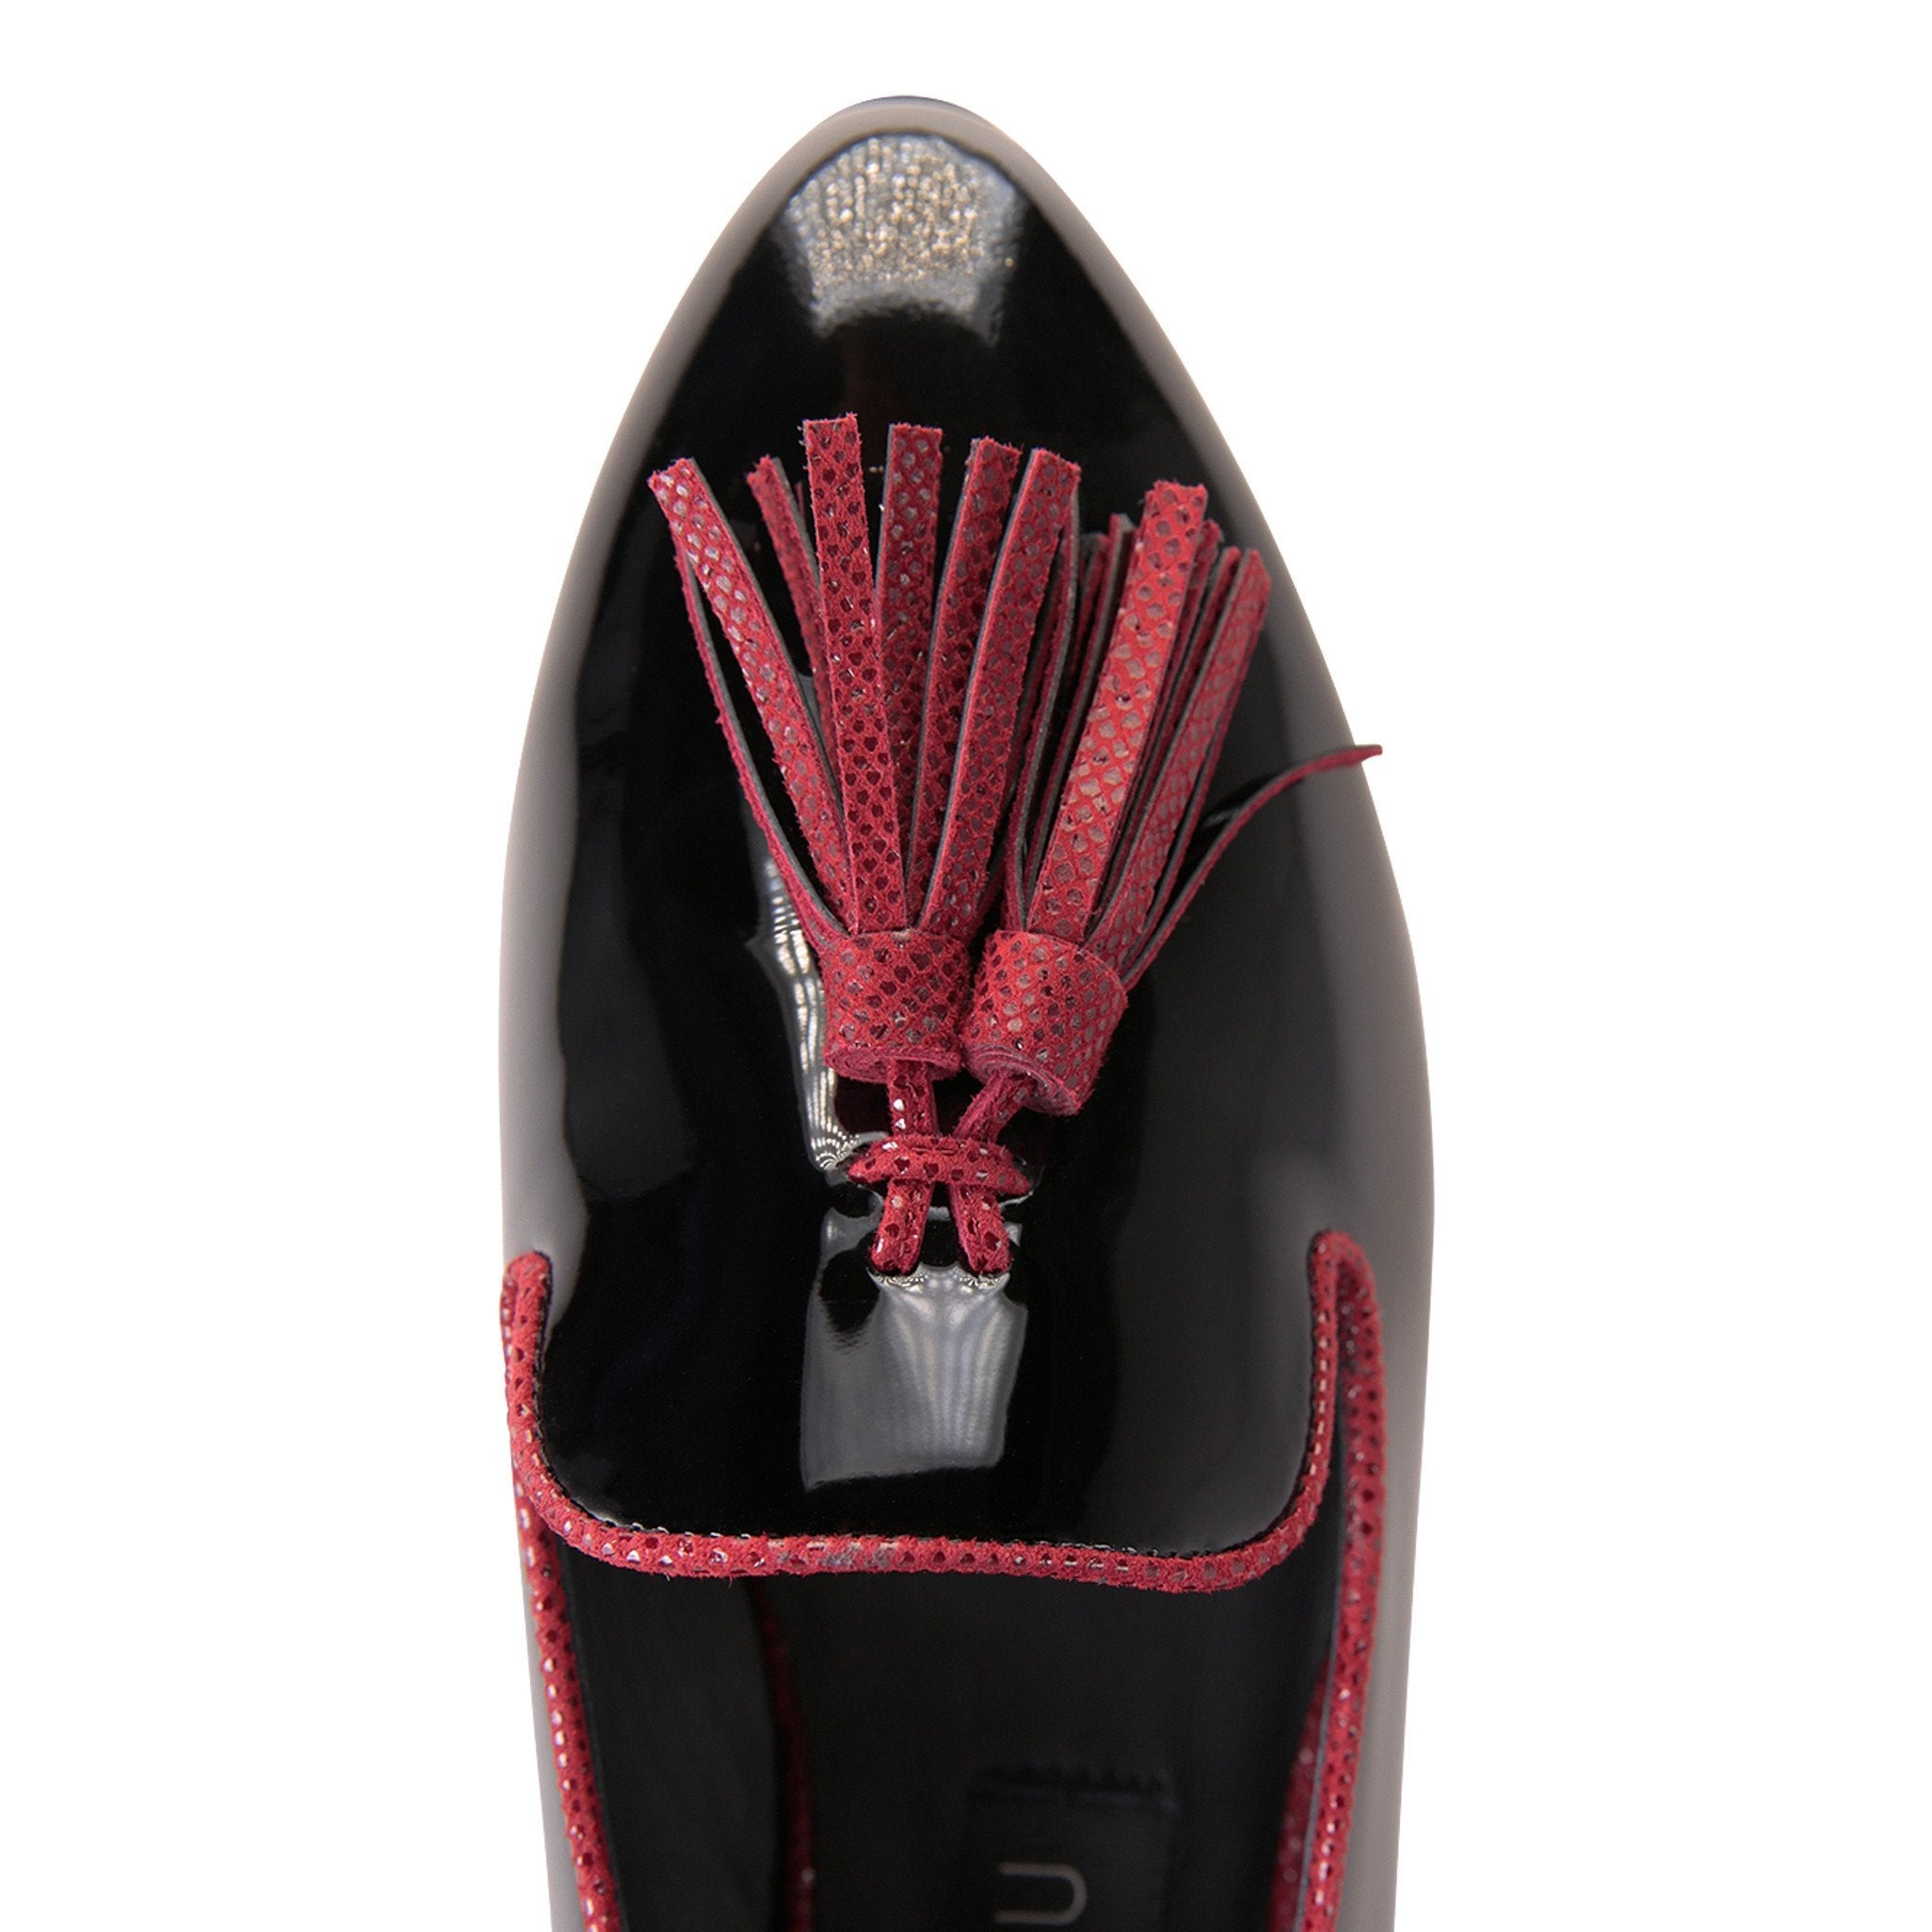 PARMA - Patent Nero + Karung Bordeaux, VIAJIYU - Women's Hand Made Sustainable Luxury Shoes. Made in Italy. Made to Order.